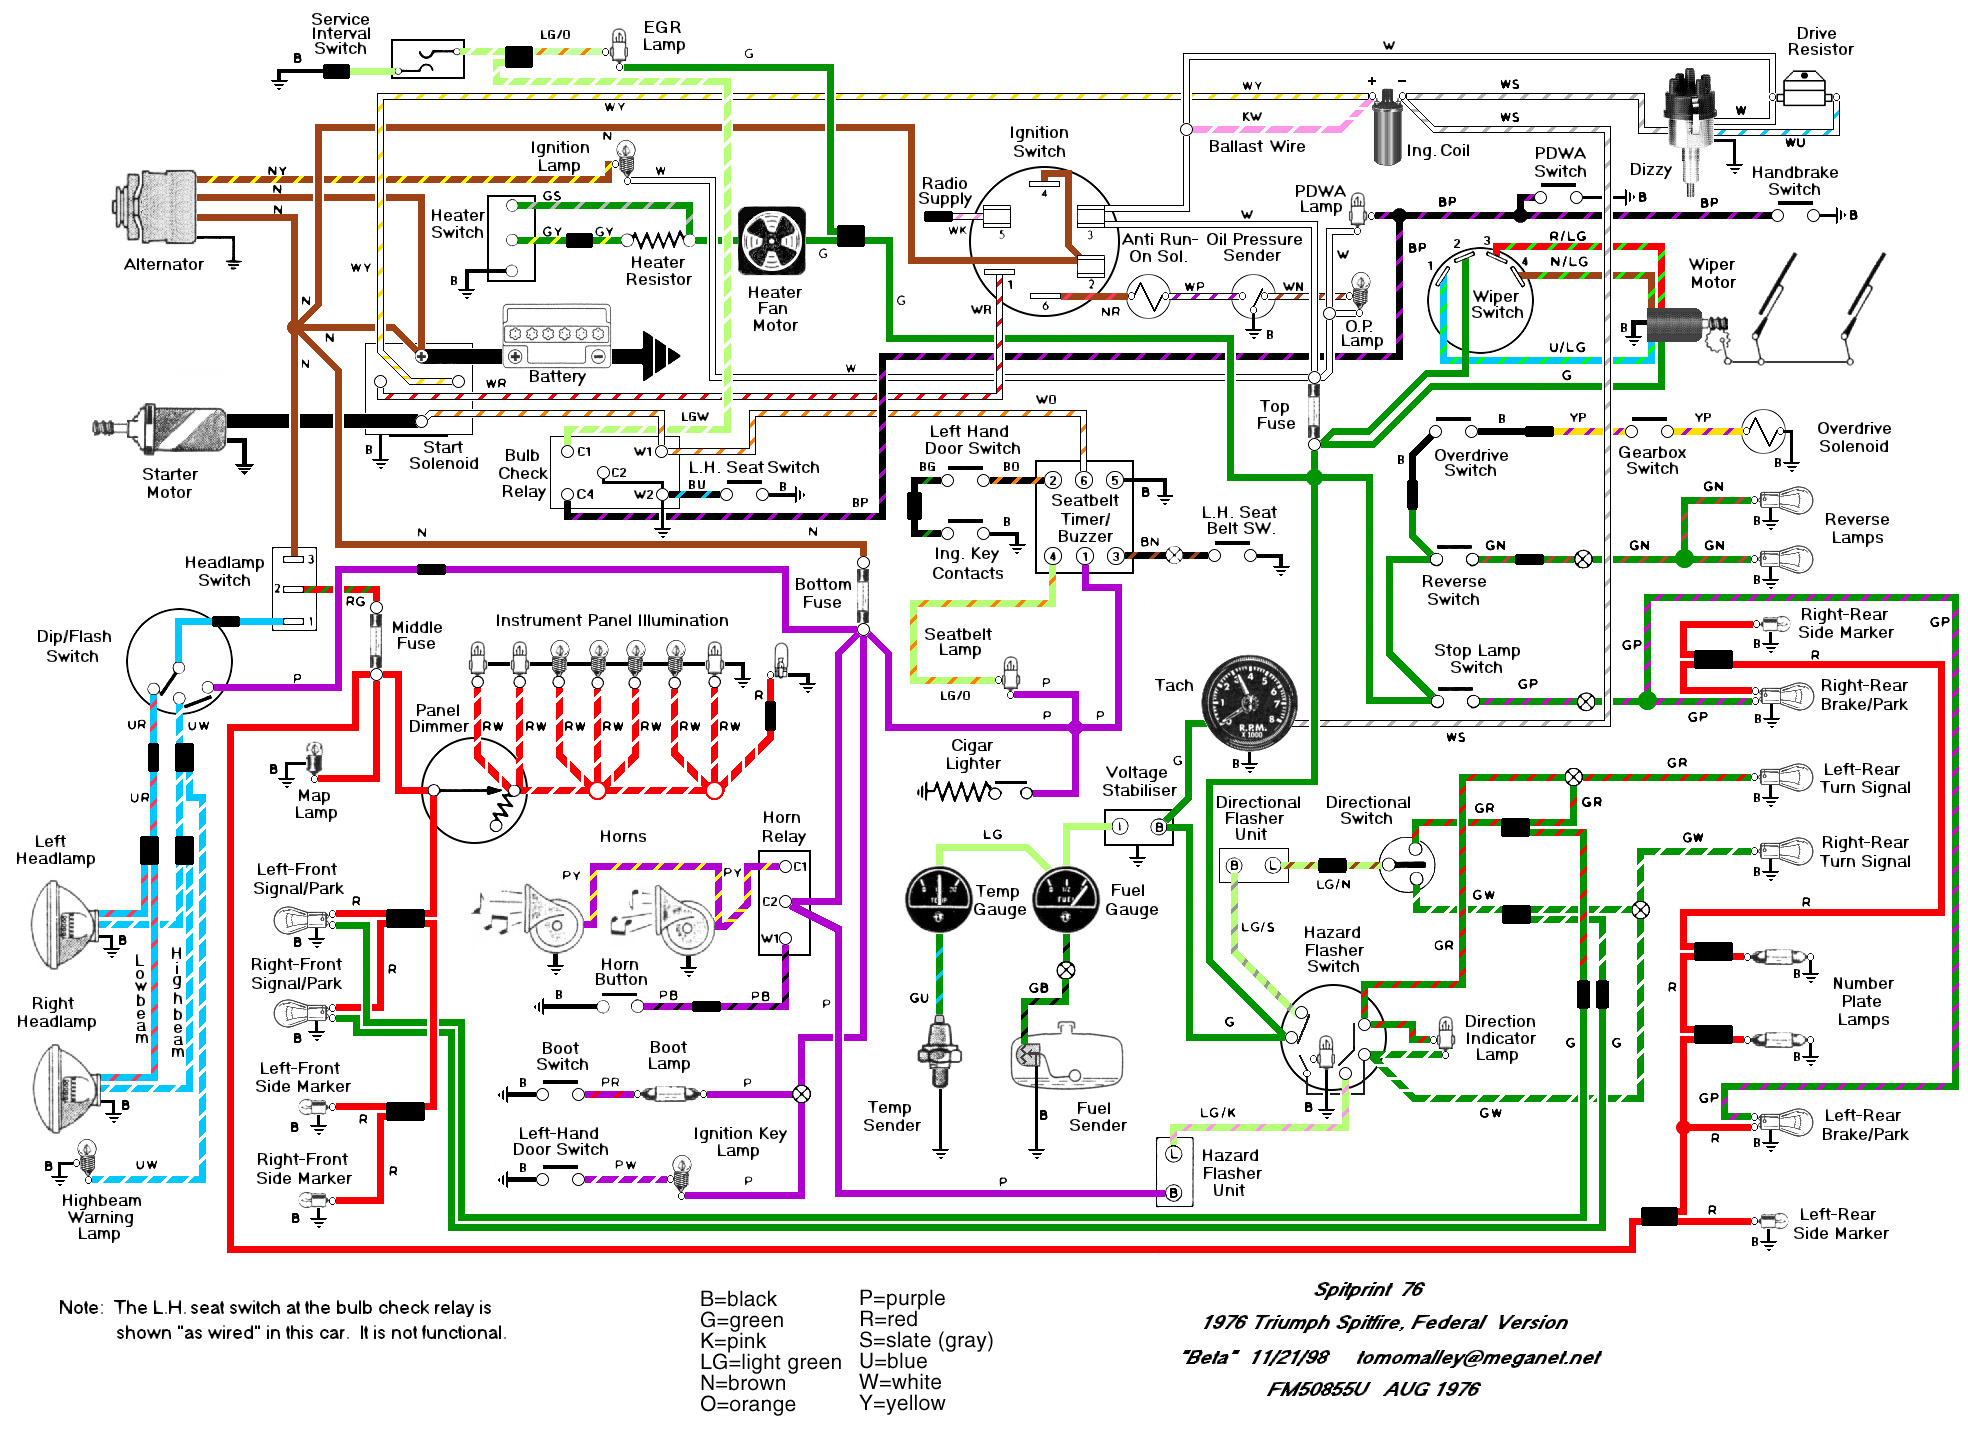 Wiring Schematics And Diagrams - Triumph Spitfire, Gt6, Herald - Wiring Diagram For